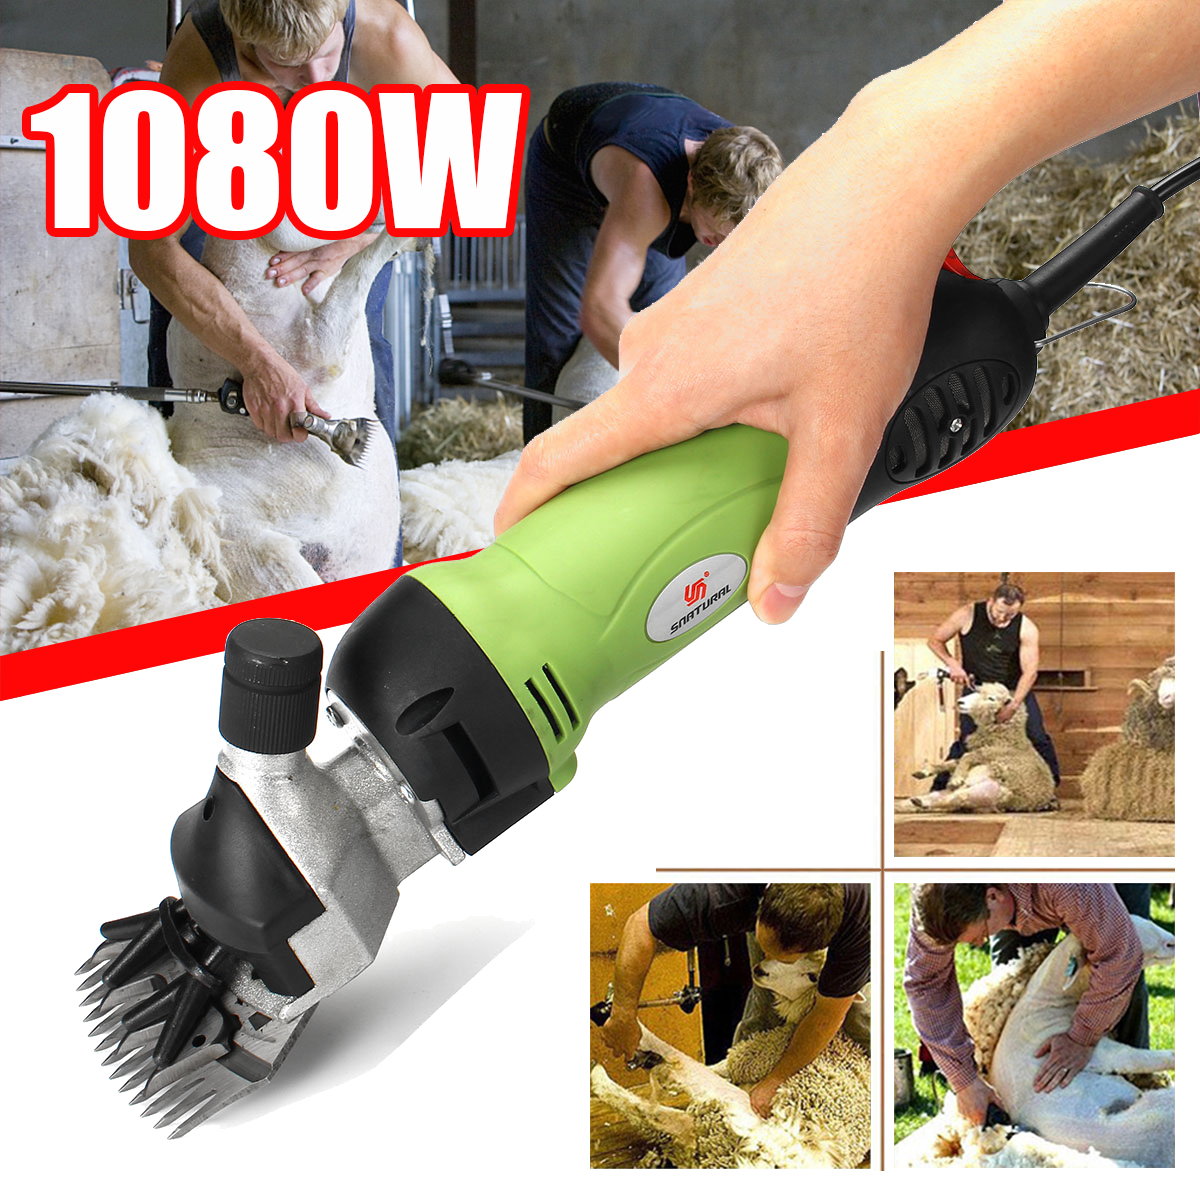 1080W Sheep Shearing Machines Electric Scissor Sheep Clippers Sheep Goats Alpaca Shears Animal Hair Shearing Cutter Wool Machine